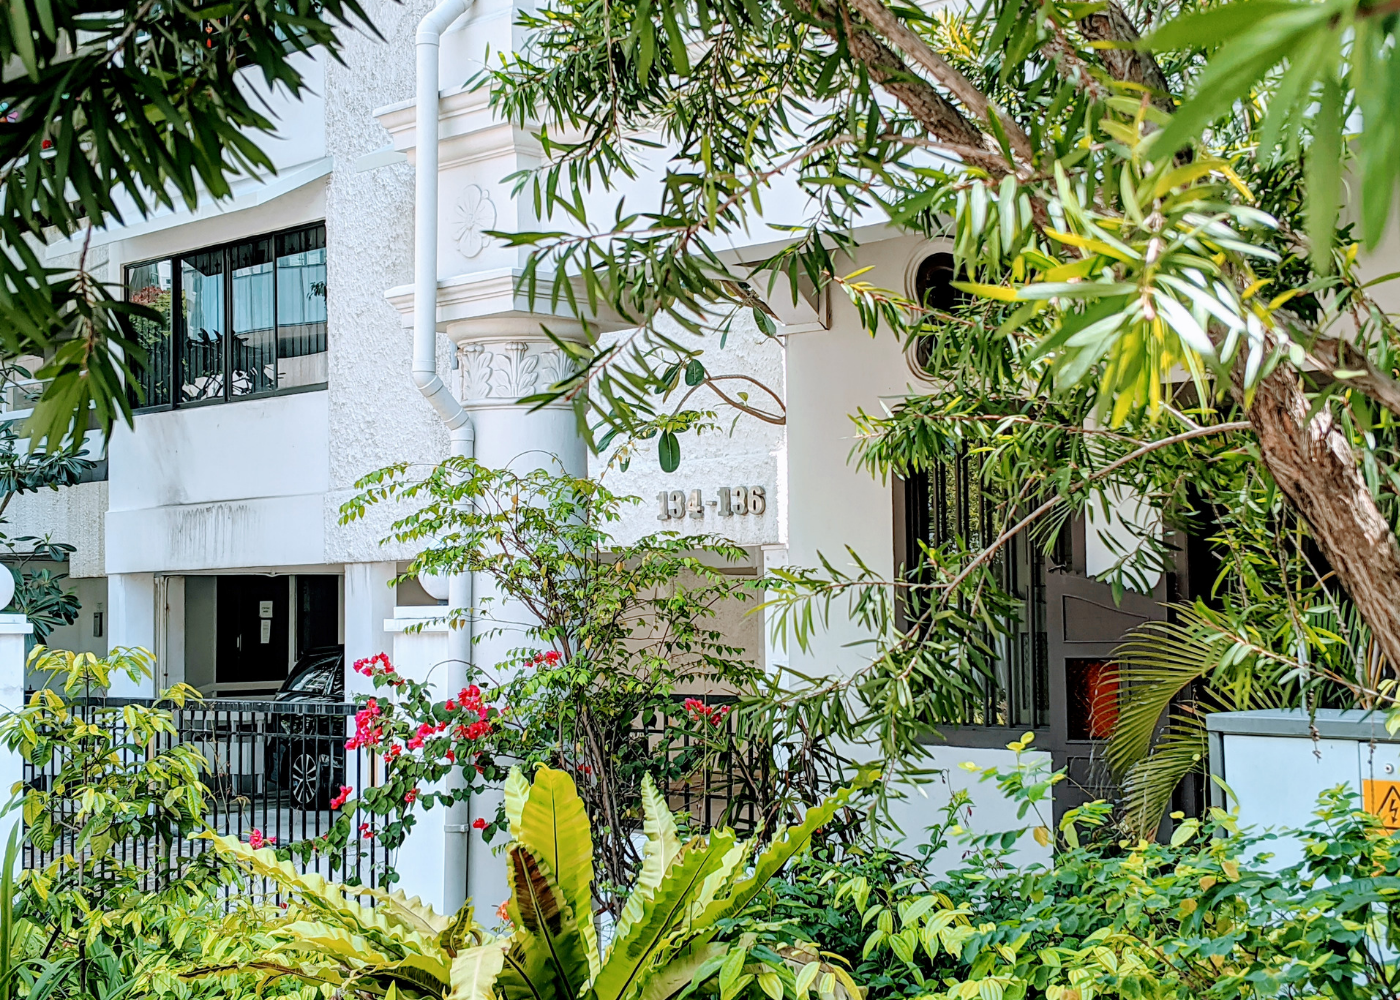 Goodbye heritage houses, hello apartment blocks. | Guide to Emerald Hill